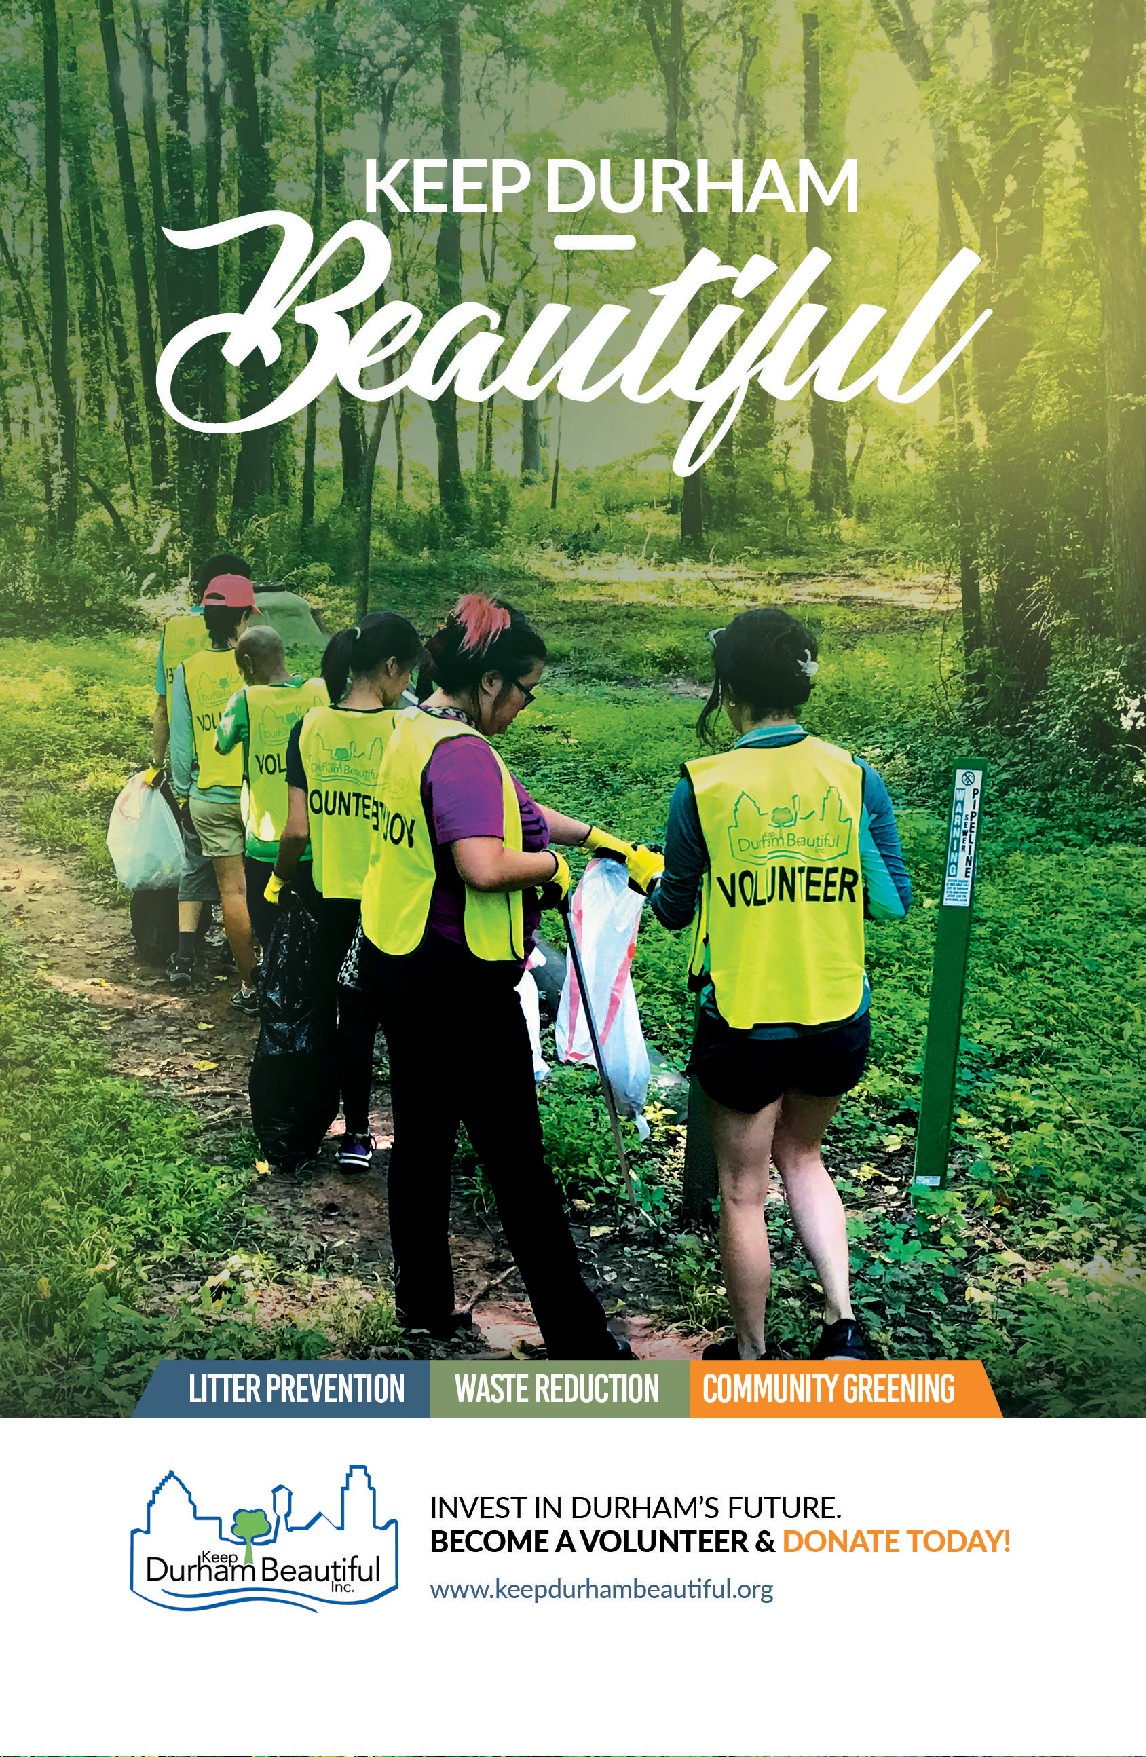 Full Page Broadway Playbill Print Ad for Keep Durham Beautiful NC USA